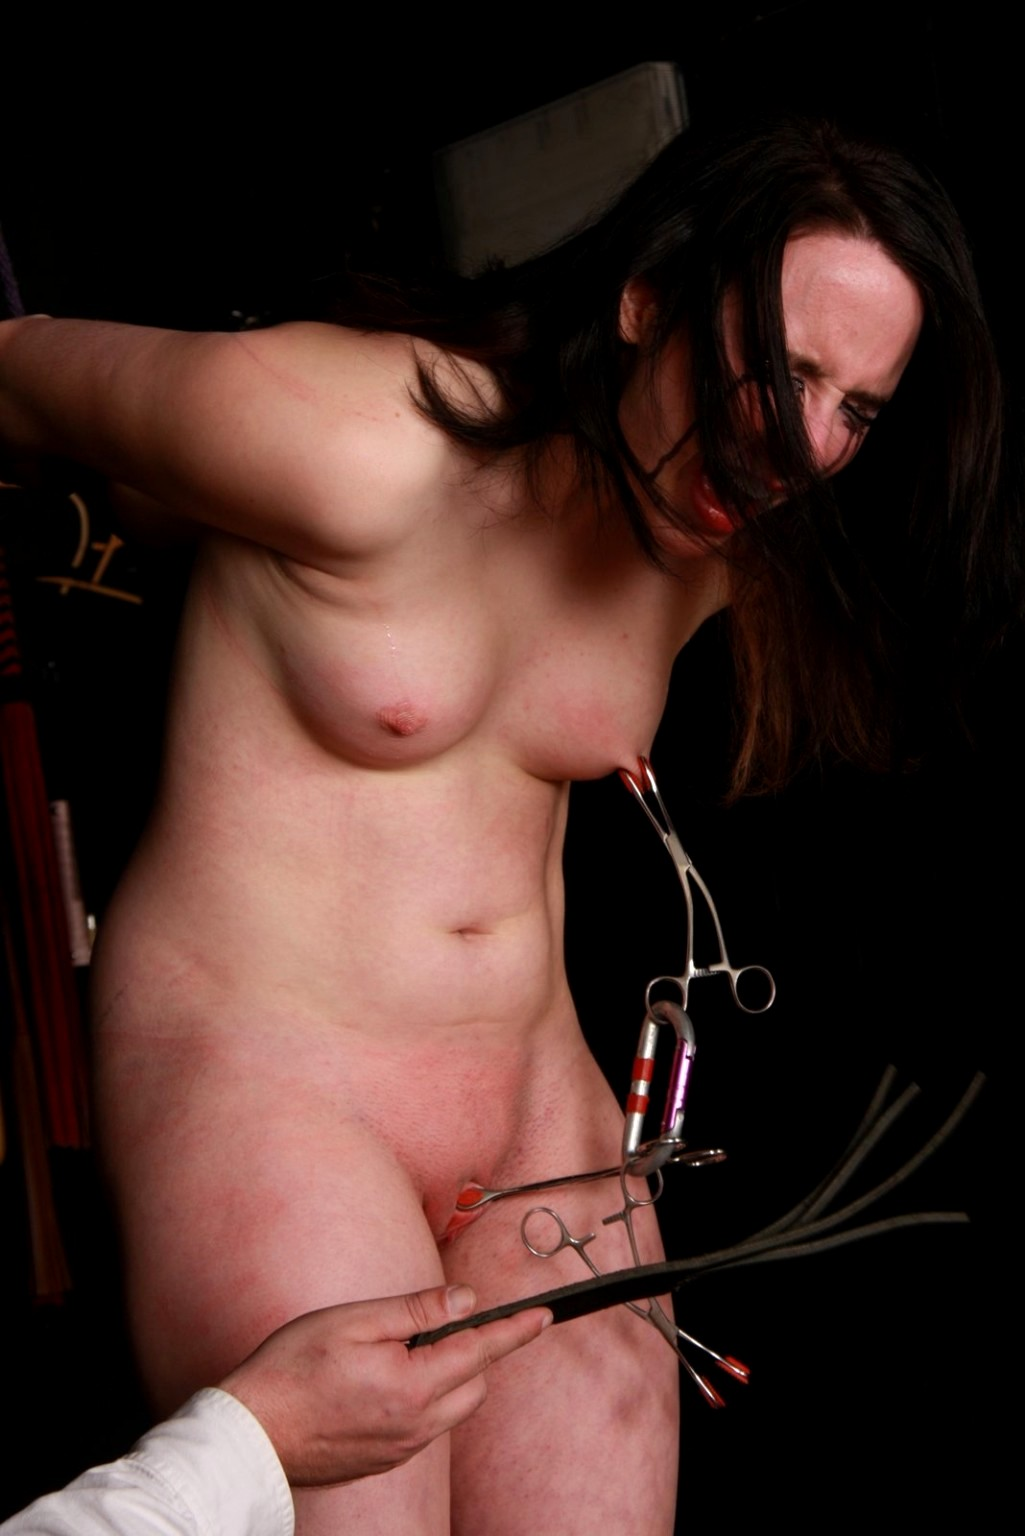 Naked girls breast whipping — pic 6